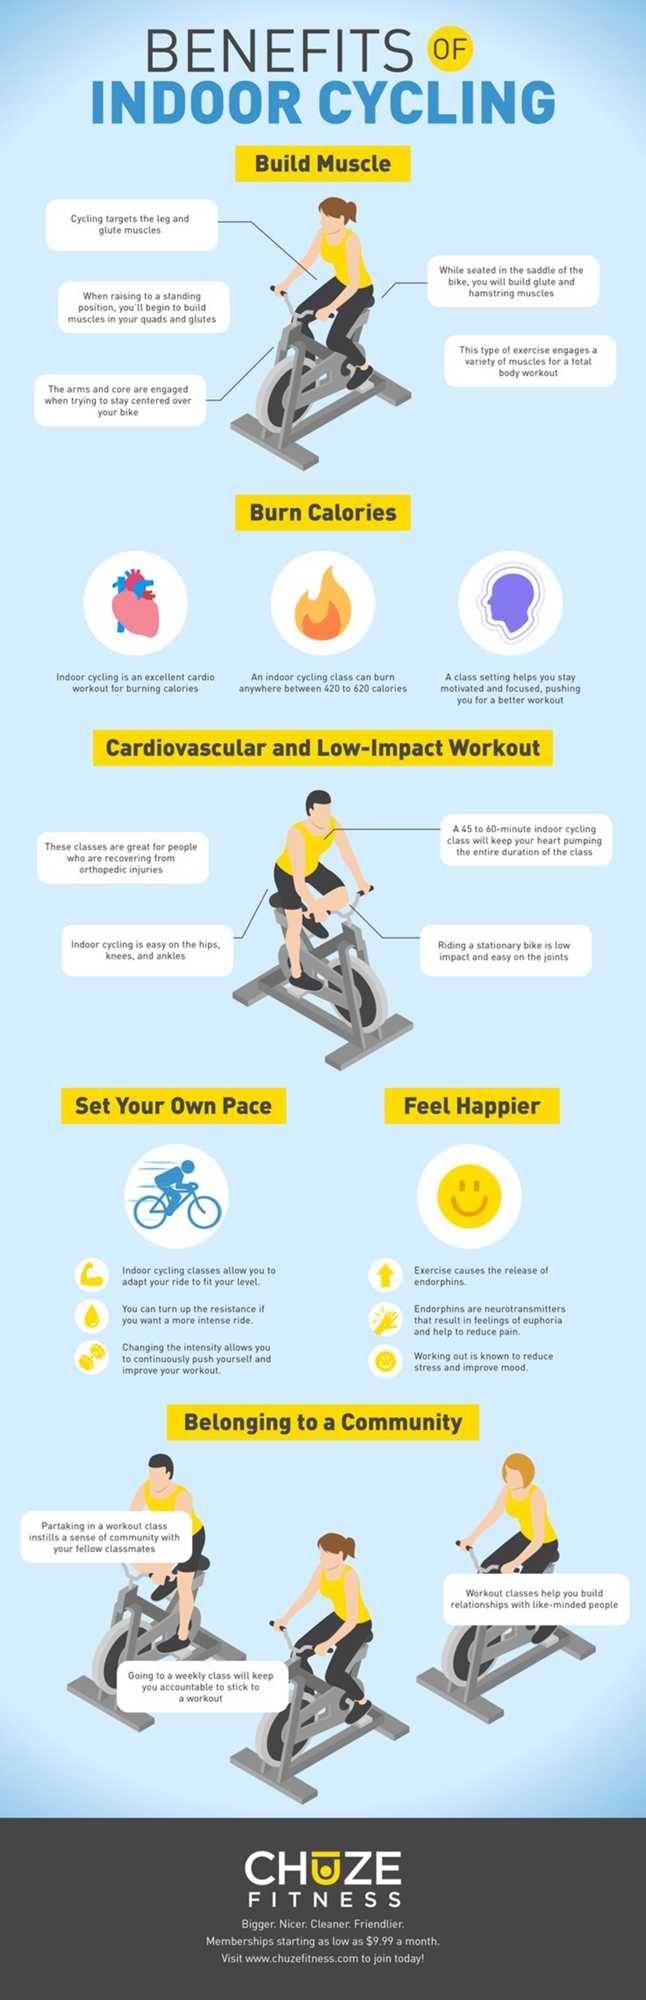 Indoor Cycling Benefits: Build Muscle, Burn Calories & More